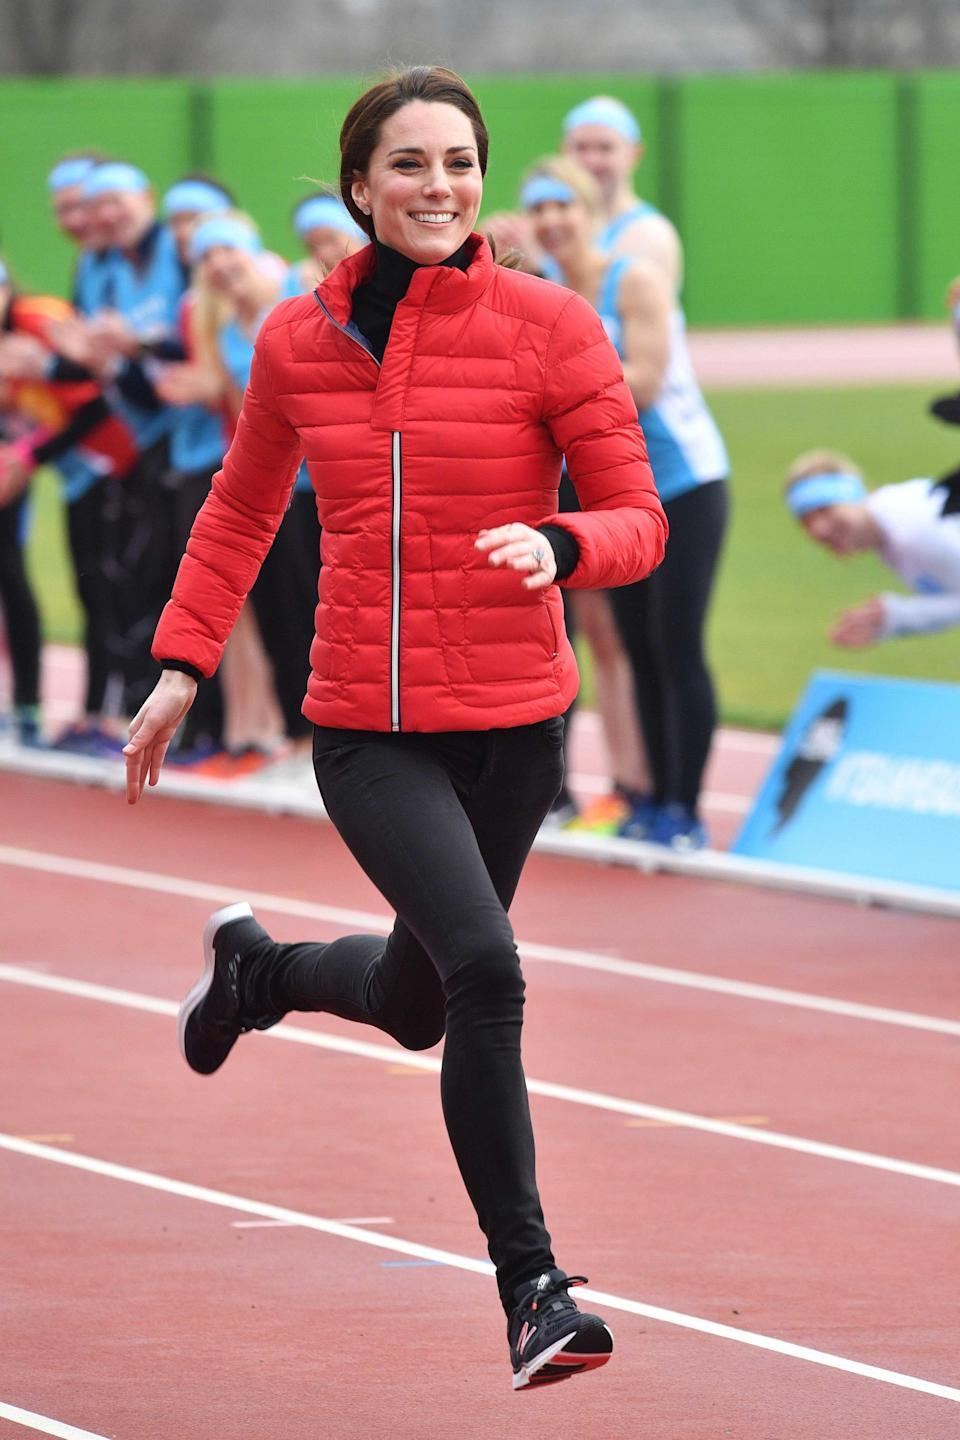 <p><b>When:</b> February 5, 2017 <b>Where:</b> <span>A Heads Together charity race at the Queen Elizabeth Olympic Park</span> <b>Wearing: </b>Perfect Moment Mini Duvet Quilted Down Ski Jacket, $450; <span>net-a-porter.com </span>New Balance Women's 77v1 Vazee Transform Training Shoe, $65; <span>amazon.com</span><b> Get the Look for Less: </b>MICHAEL Michael Kors Hooded Down Jacket, $150; <span>nordstrom.com </span>J.Crew Toothpick Jean in Black, $115; <span>jcrew.com </span>Tissue Turtleneck T-shirt, $35; <span>jcrew.com</span> </p>